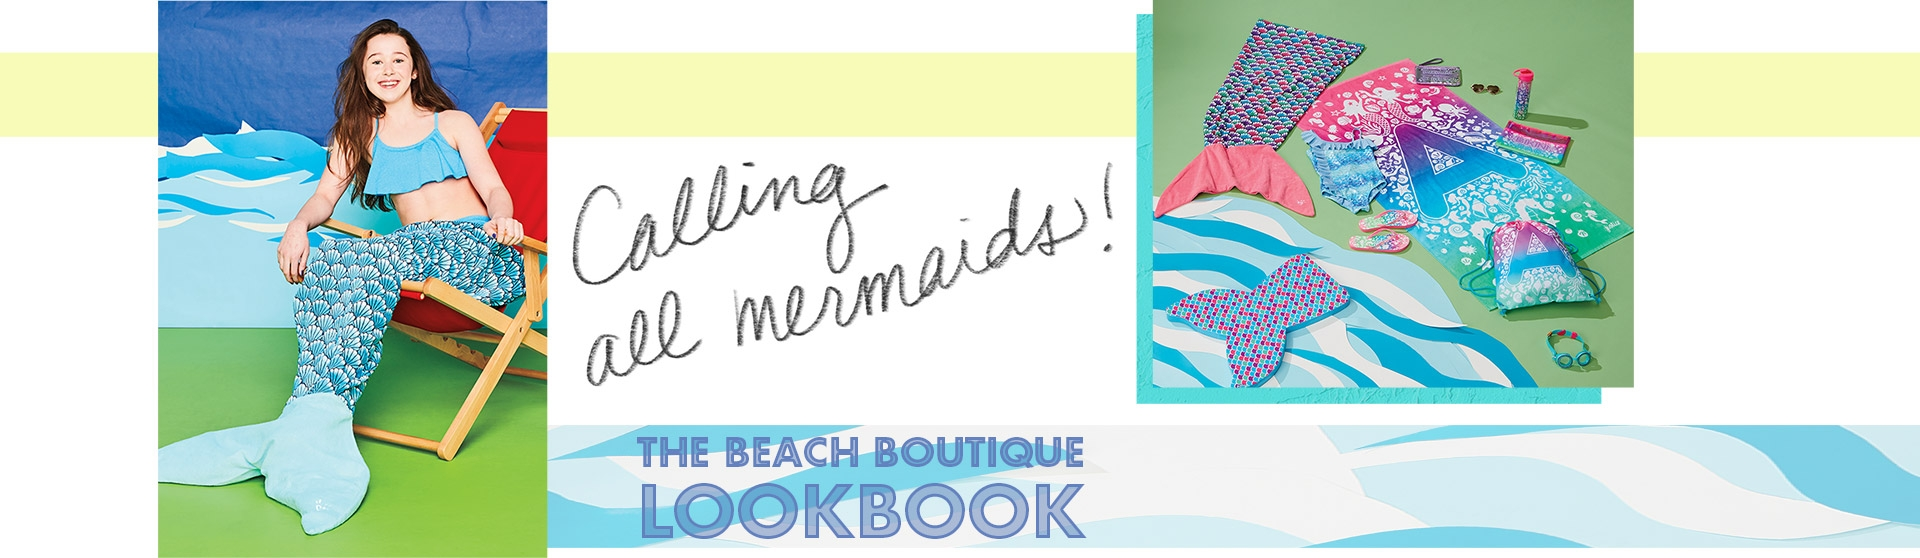 Explore the beach boutique lookbook!